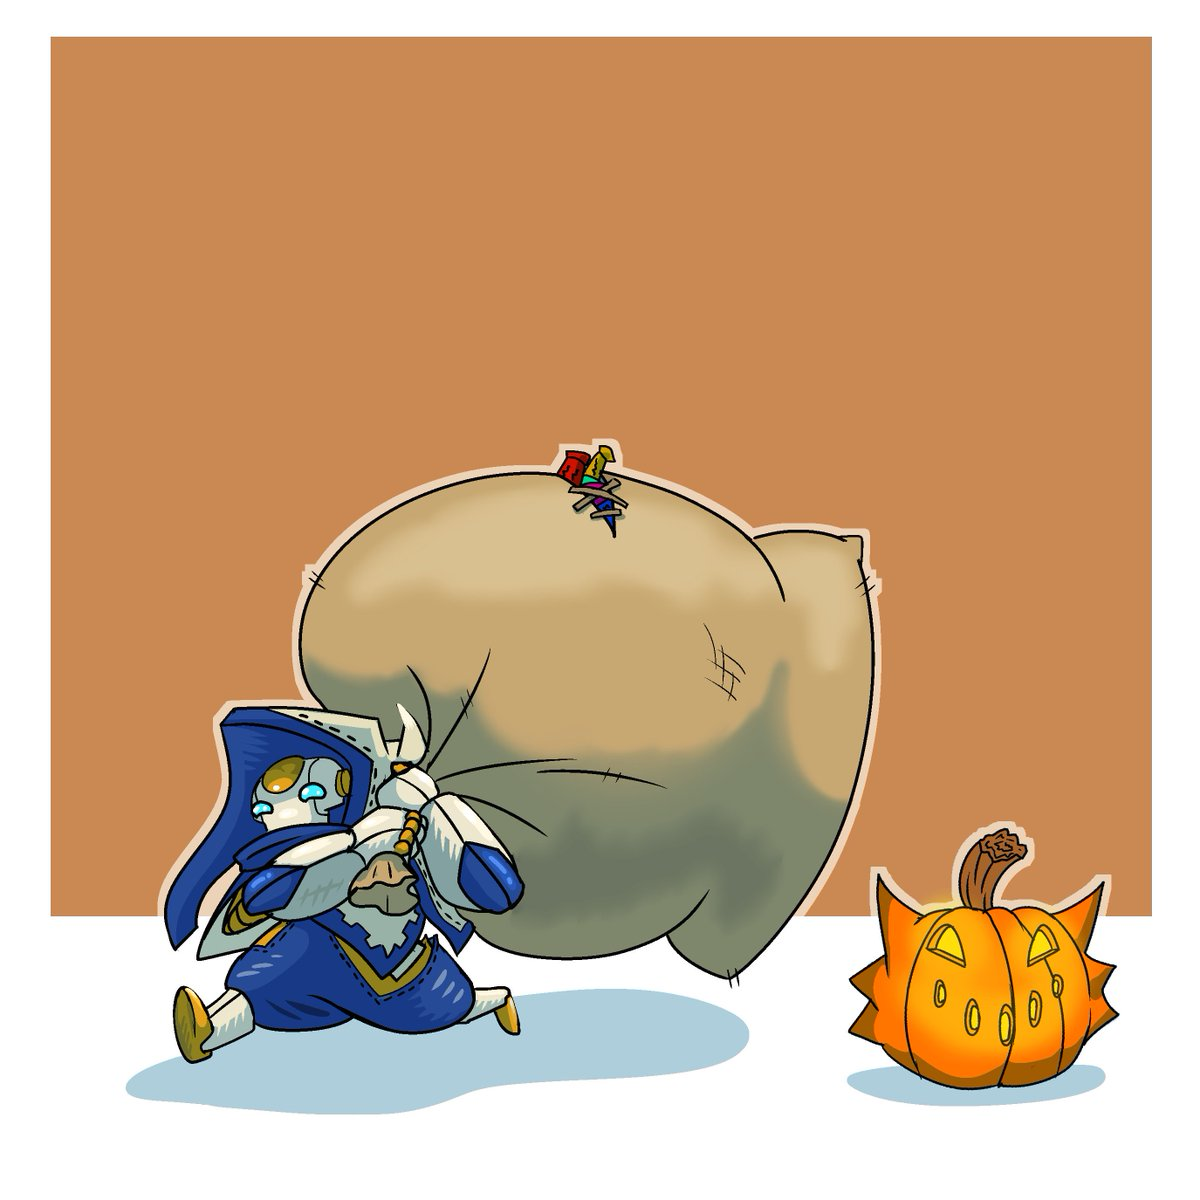 The Unexpectables On Twitter Happy Hoketh S Harrowing From All Of Us Here At The Unexpectables What Is Log Gonna Do With All That Candy Art By Theropod Art Https T Co G8rwws3hx3 Bio guidelines for fan art: the unexpectables on twitter happy